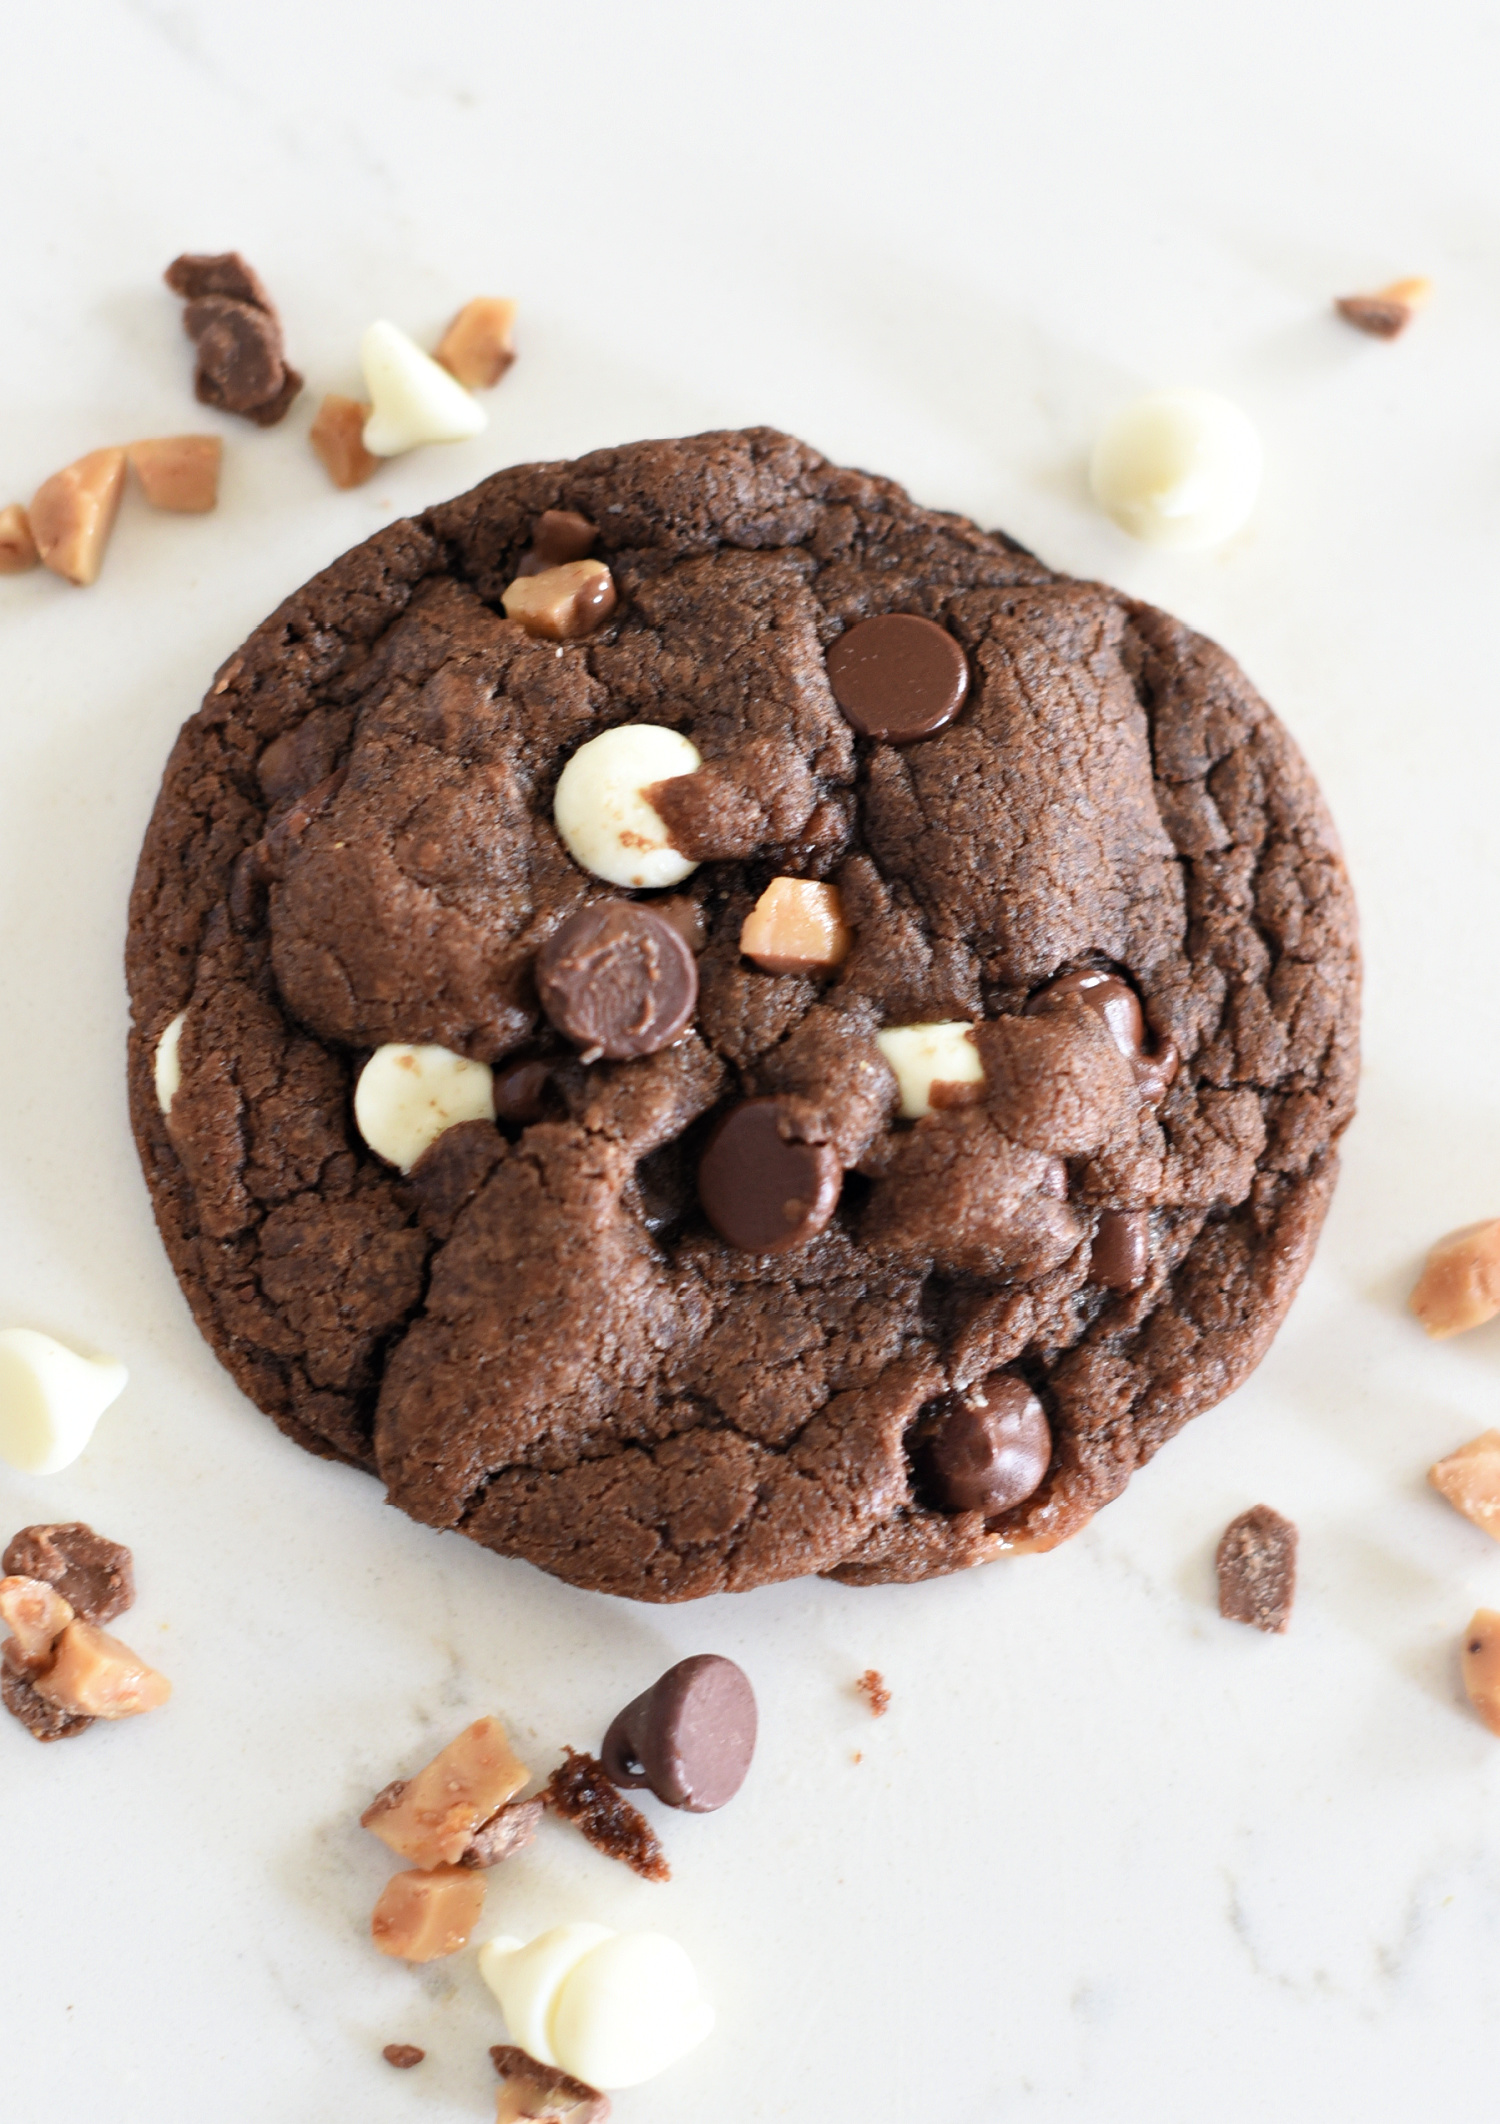 Chocolate Chocolate Chip Cookie with White Chocolate and Toffee